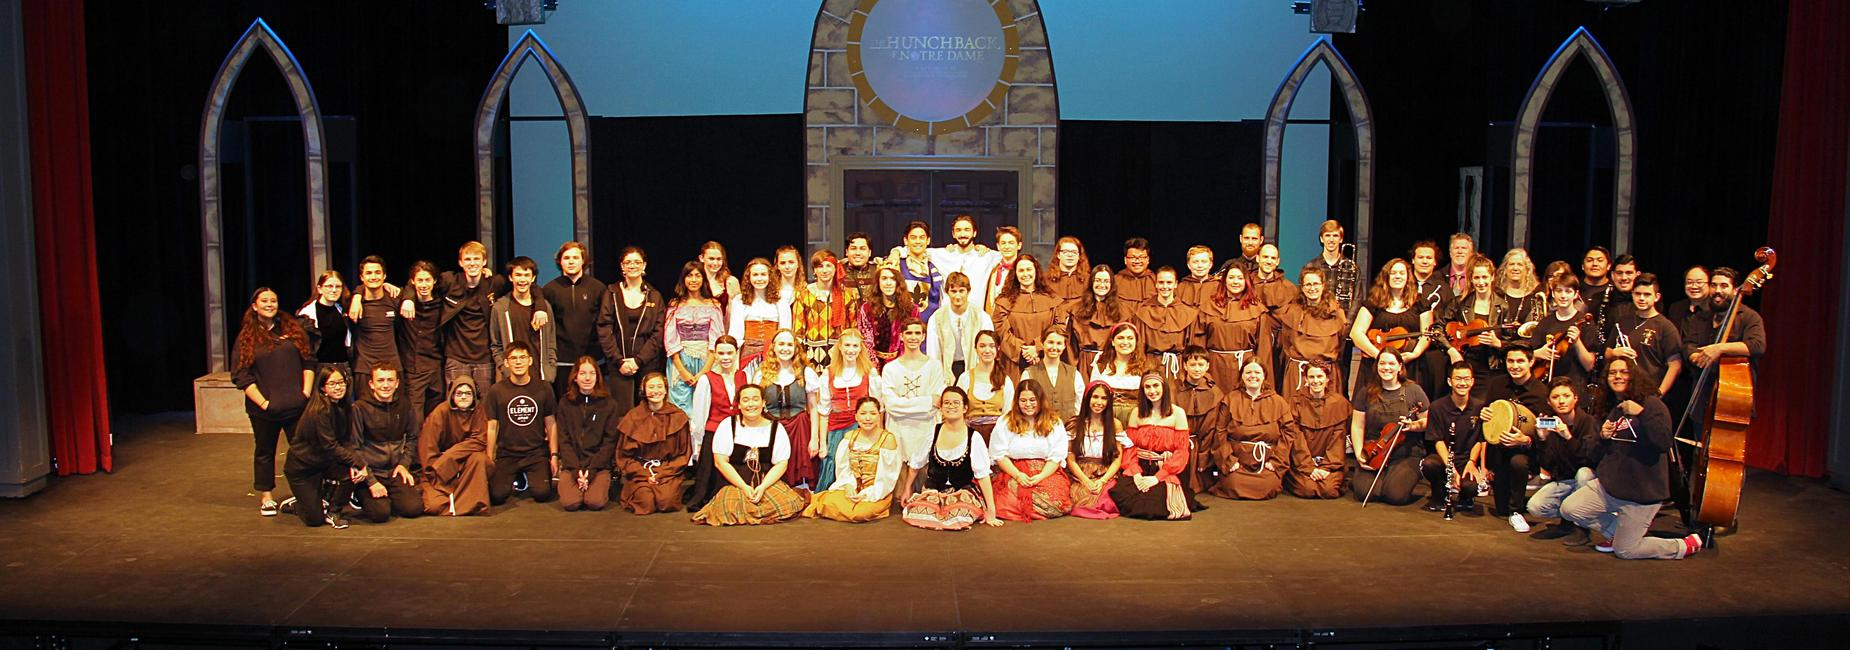 image of hunchback of notre dame cast, crew, choir and orchestra